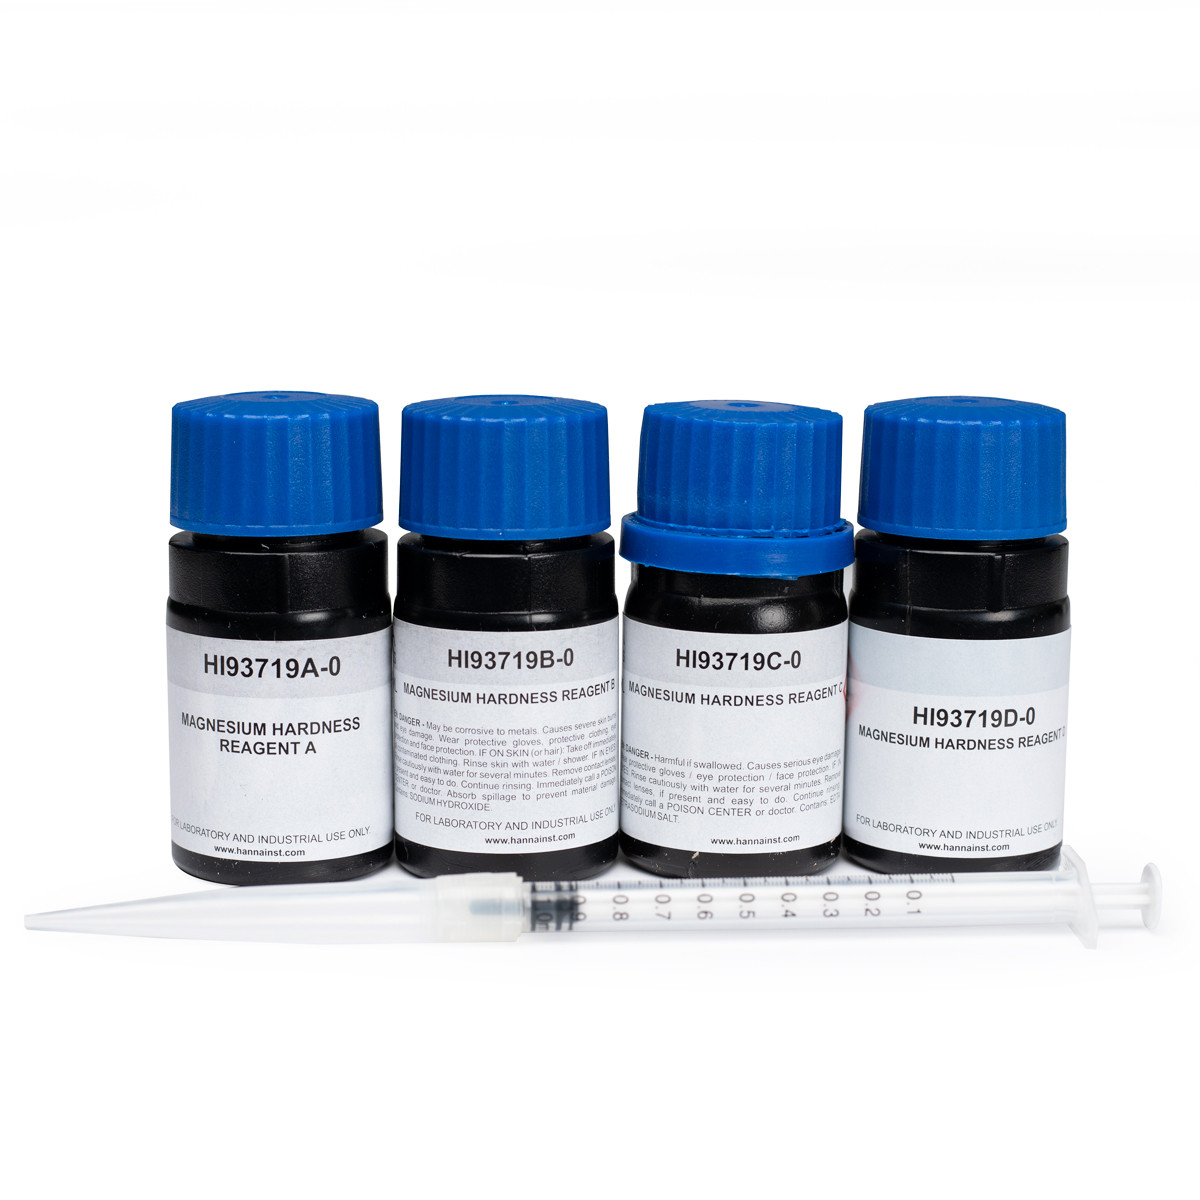 Magnesium and Total Hardness Reagents (100 tests)